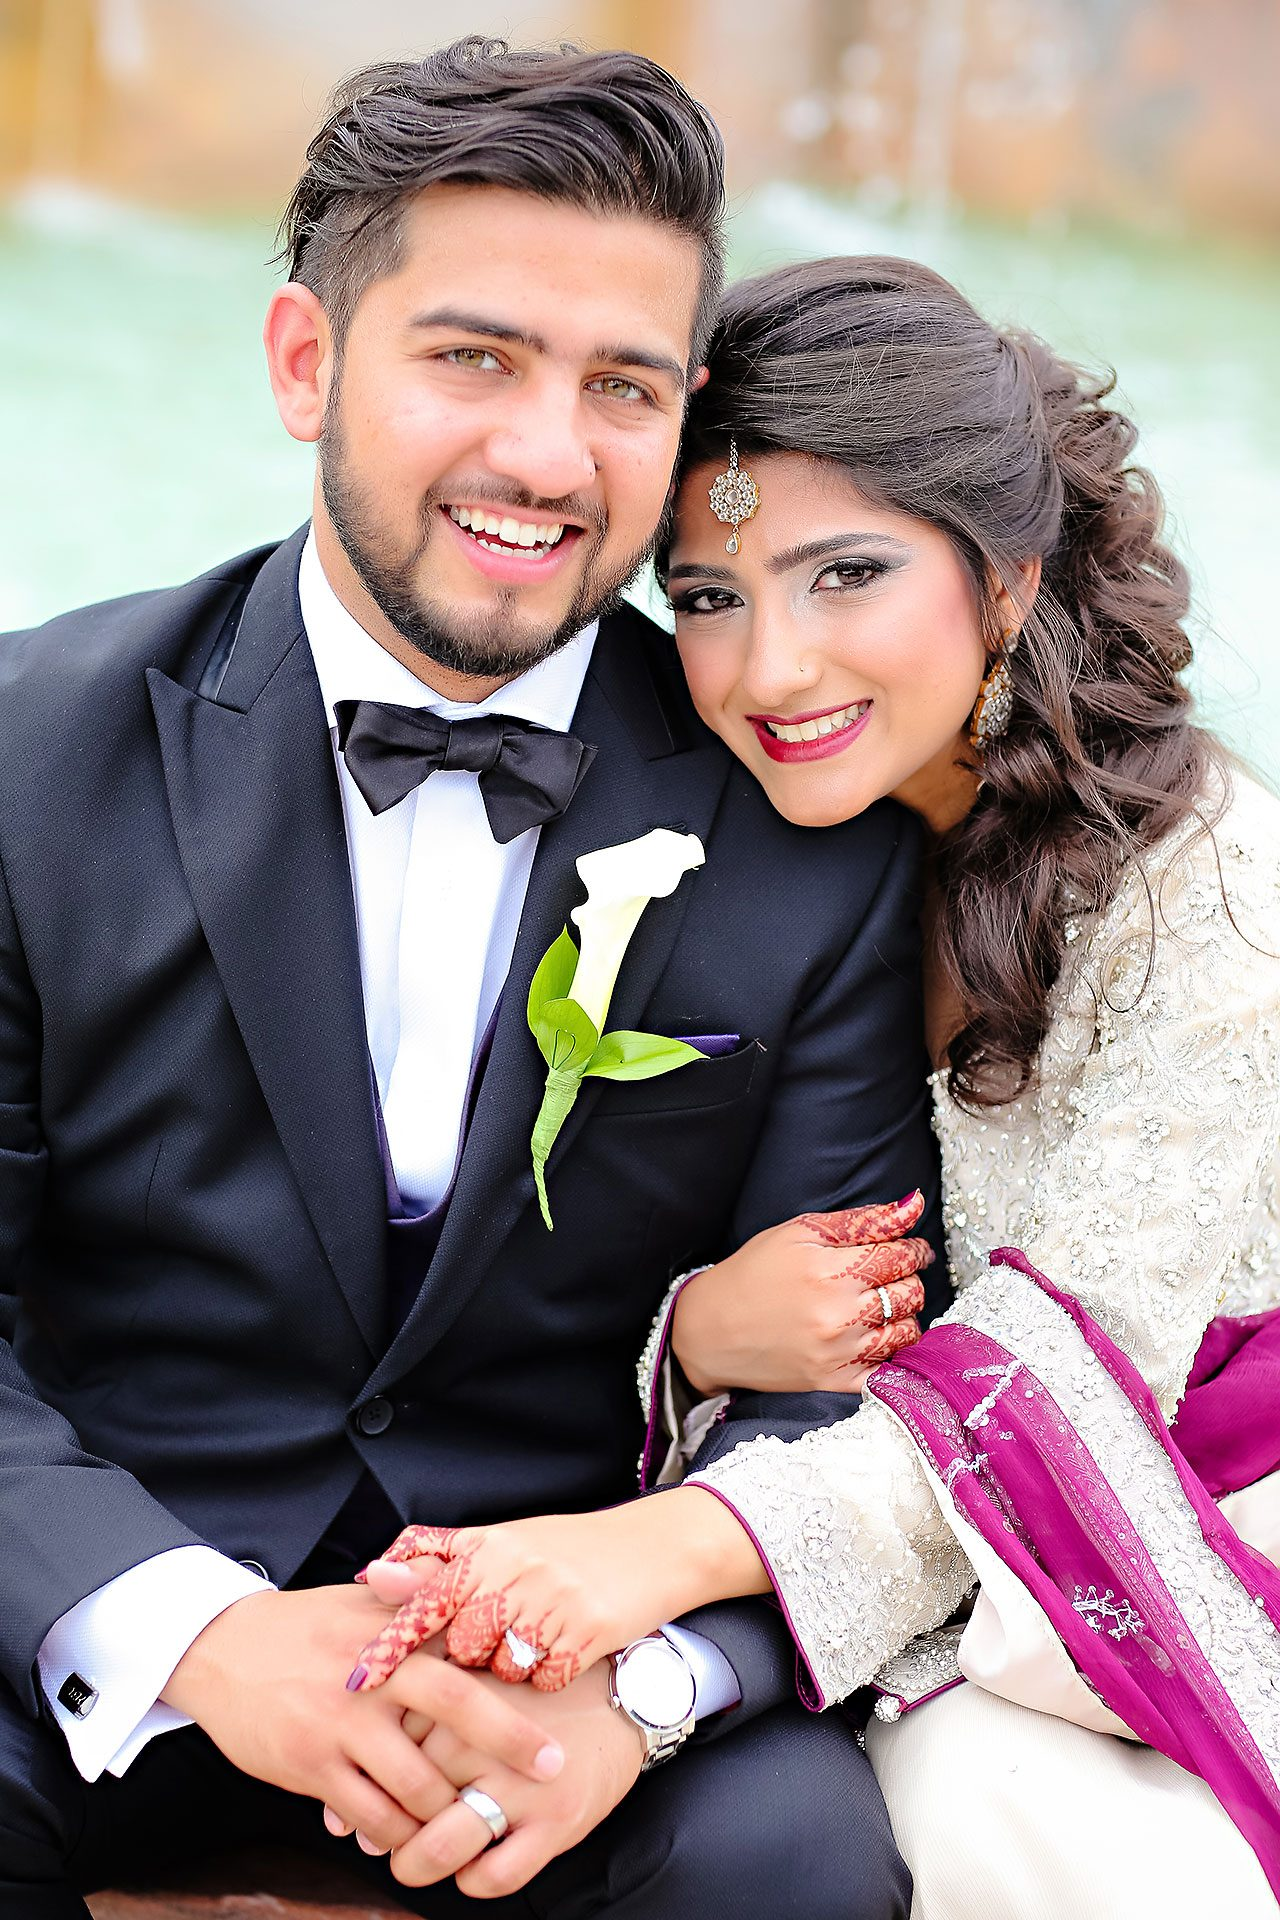 Haseeba Ammar Indianapolis Pakistani Wedding Reception 061